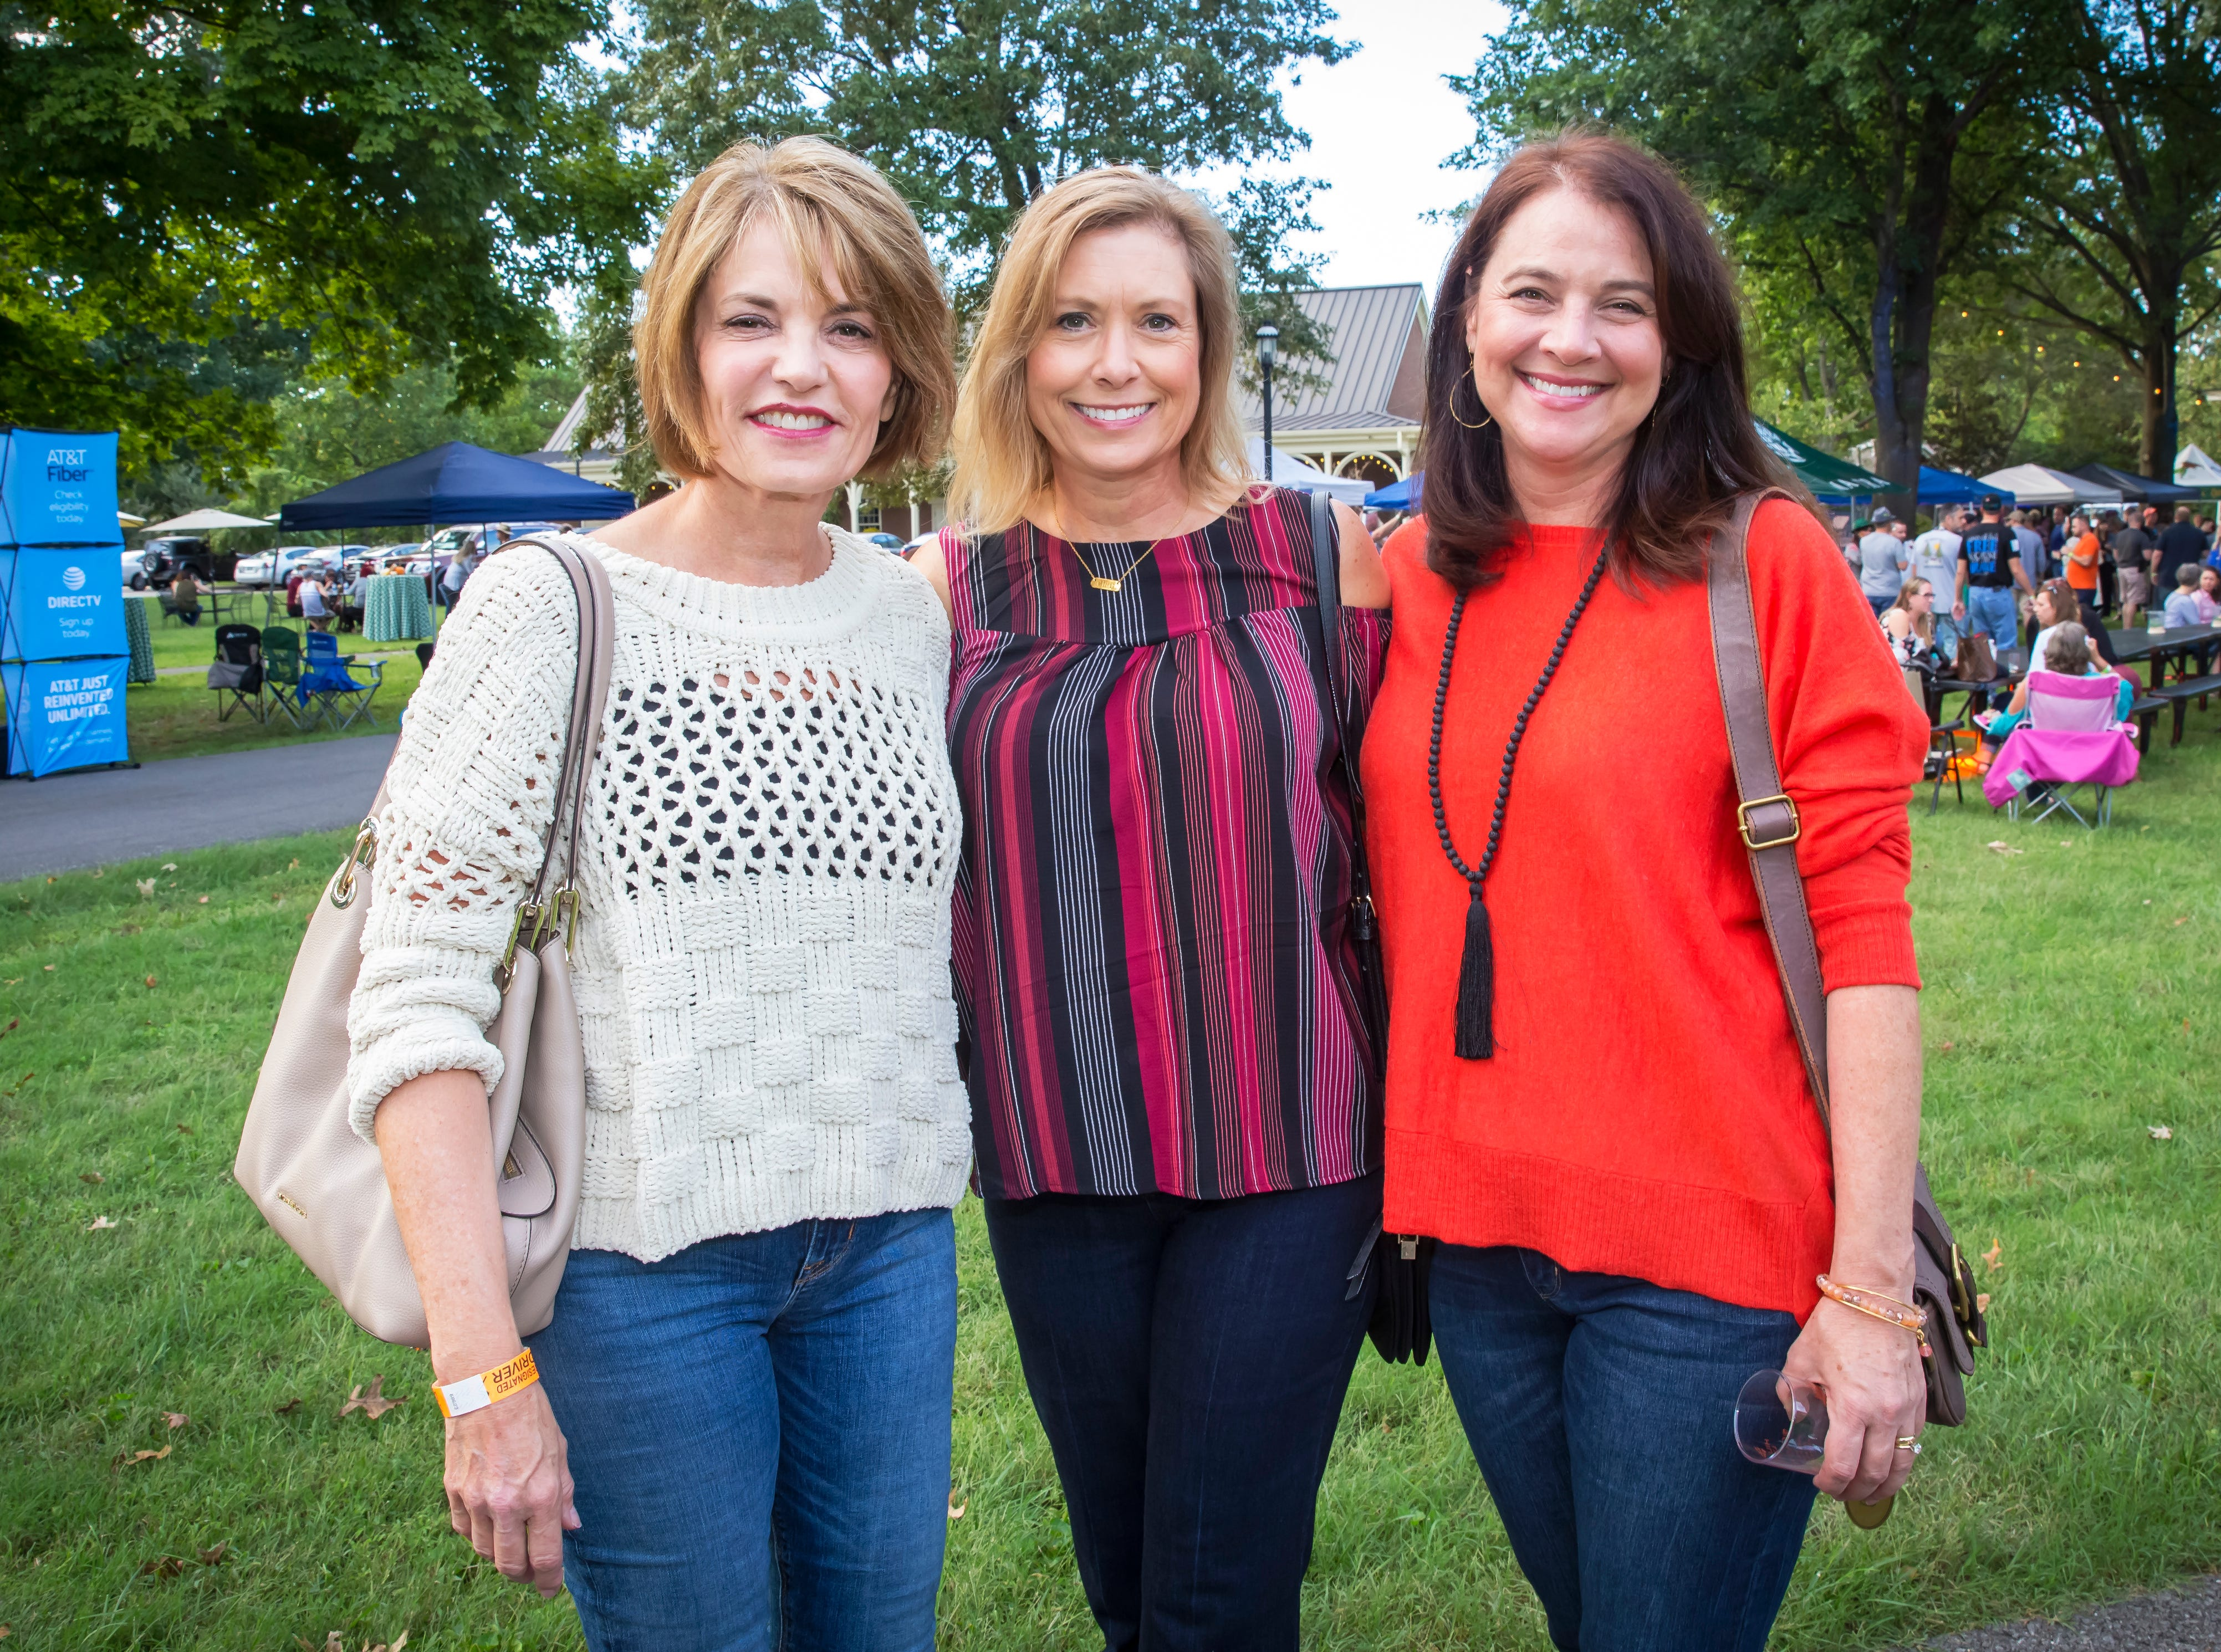 Kim Ristau, Connie Harris and Molly Adcock at the fourth-annual Oktoberfest held at Oaklands Mansion.Jim Davis/for the DNJ